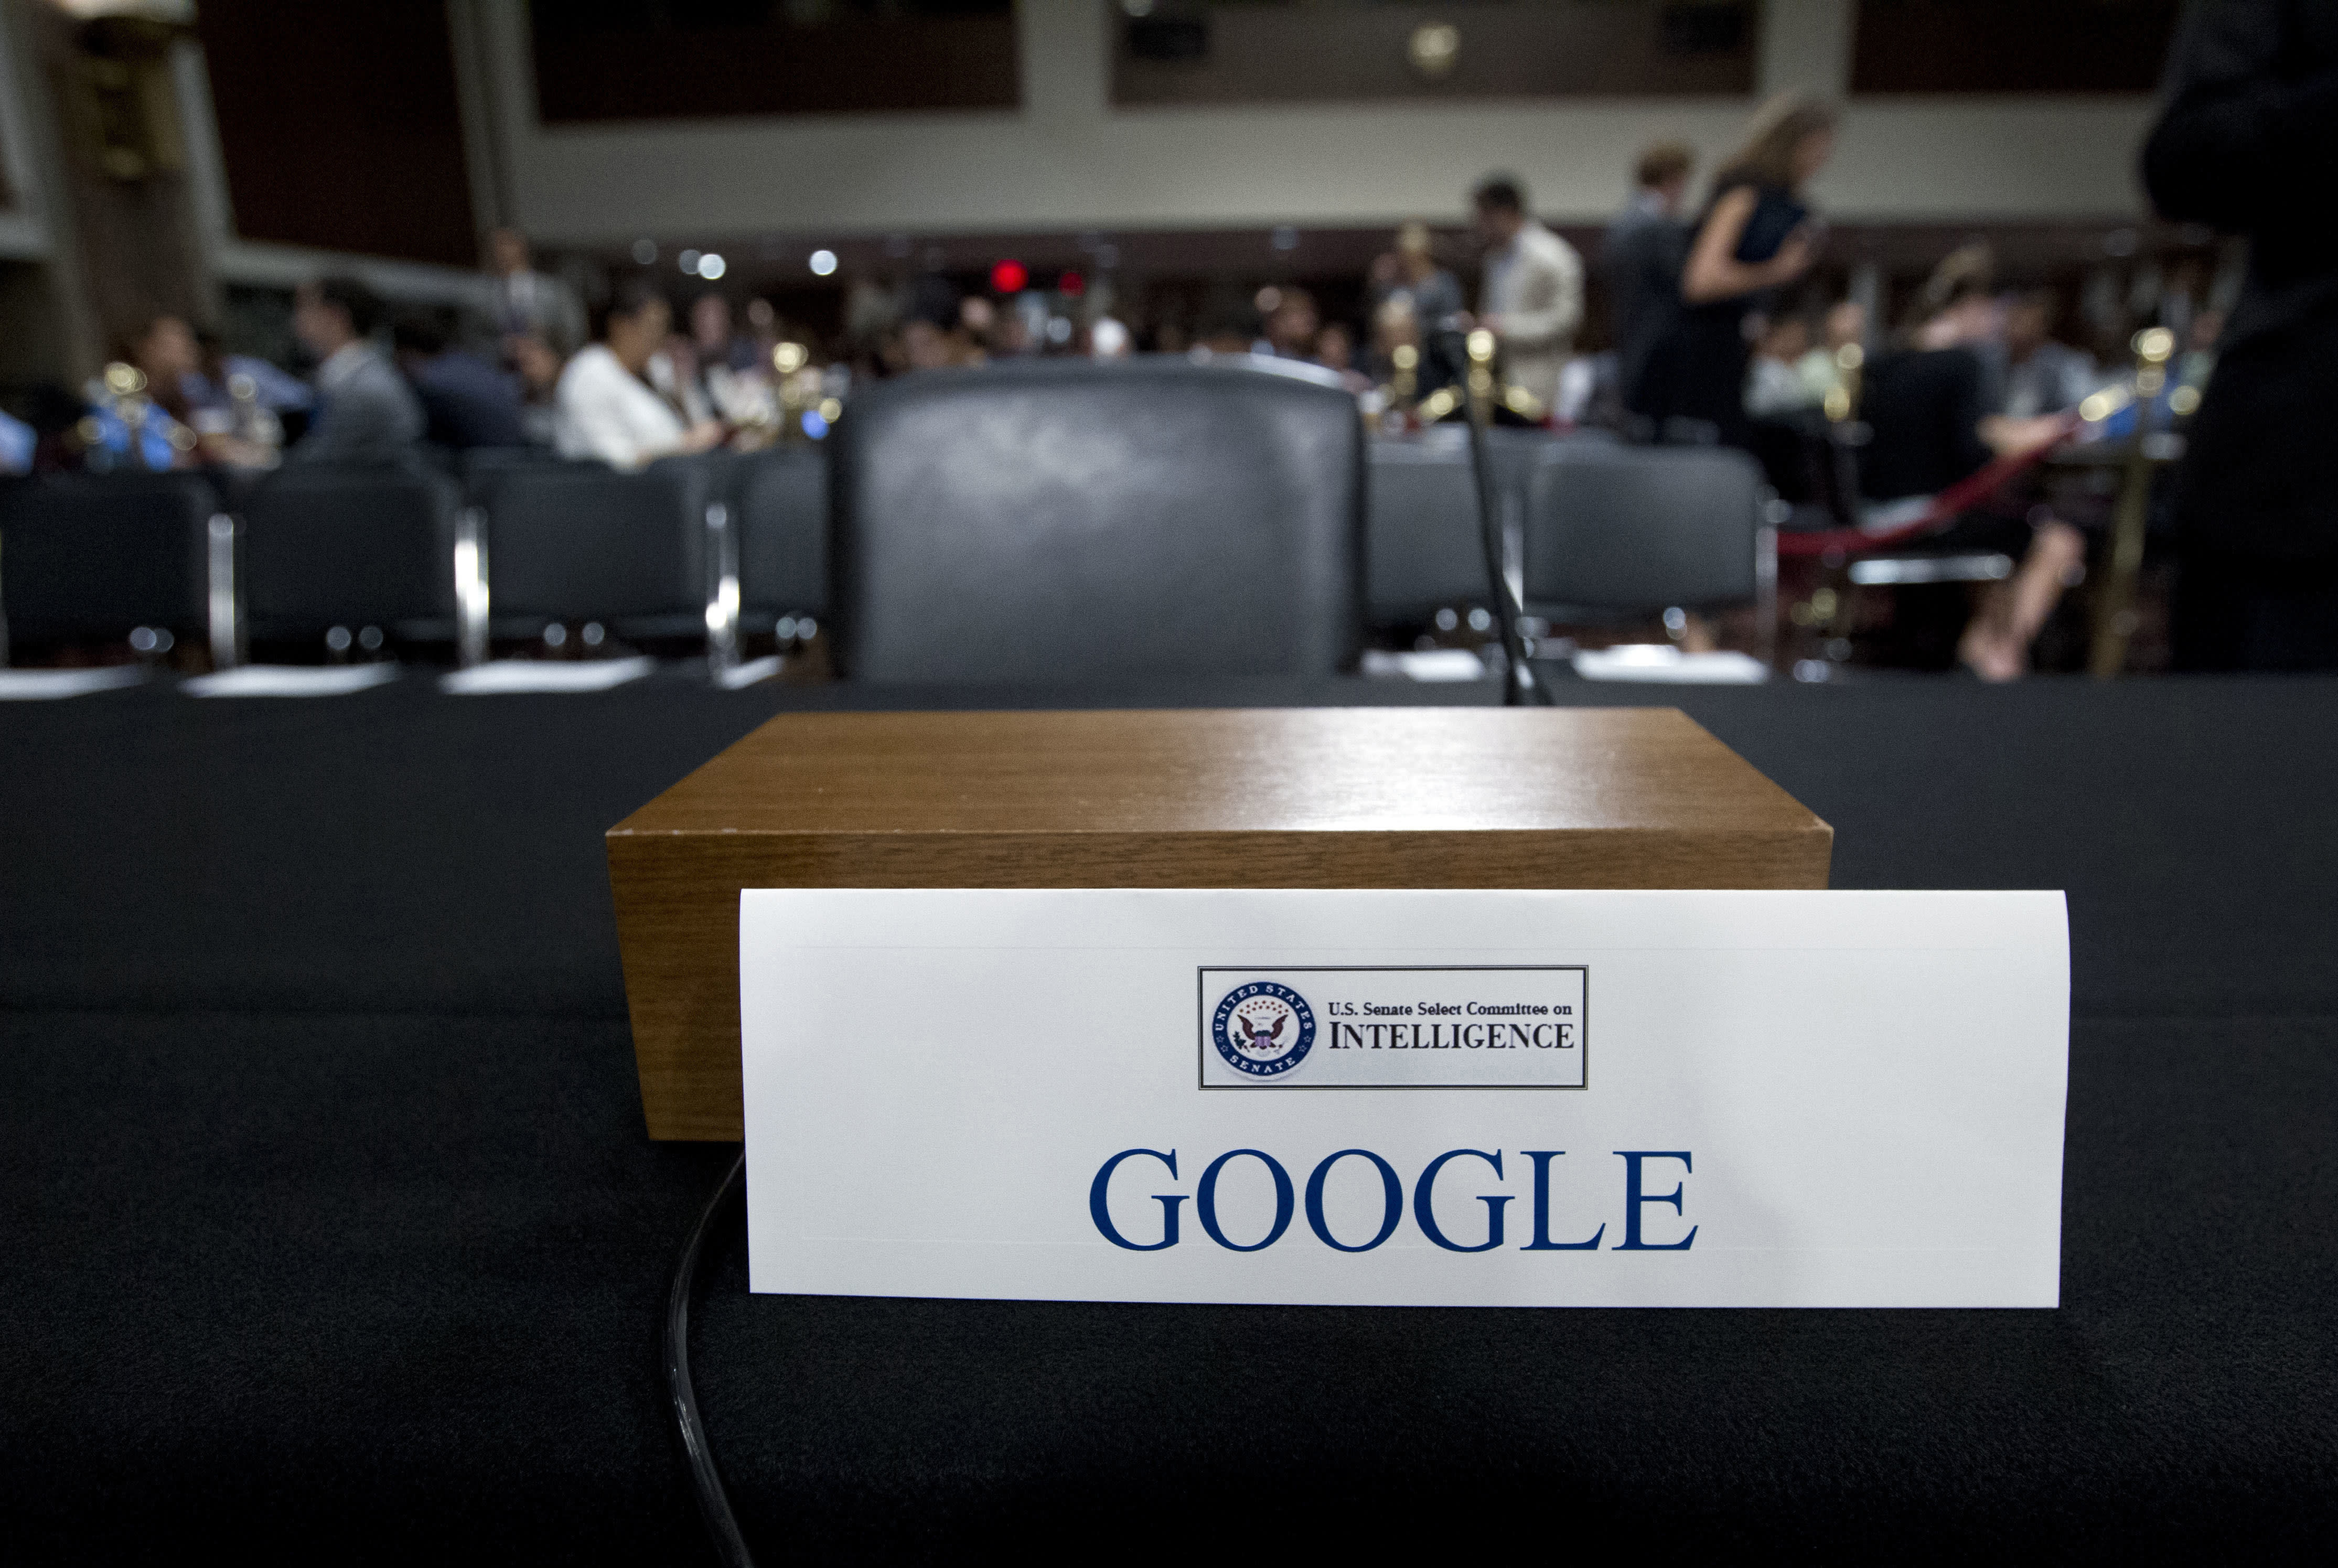 "FILE - This Sept. 5, 2018, file photo shows an empty chair reserved for Google's parent Alphabet, which refused to send its top executive, as Facebook COO Sheryl Sandberg and Twitter CEO Jack Dorsey testify before the Senate Intelligence Committee hearing on Capitol Hill in Washington. A year ago, Shoshana Zuboff dropped an intellectual bomb on the technology industry. In a 700-page book, the Harvard scholar skewered tech giants like Facebook and Google with a damning phrase: ""surveillance capitalism."" (AP Photo/Jose Luis Magana, File)"